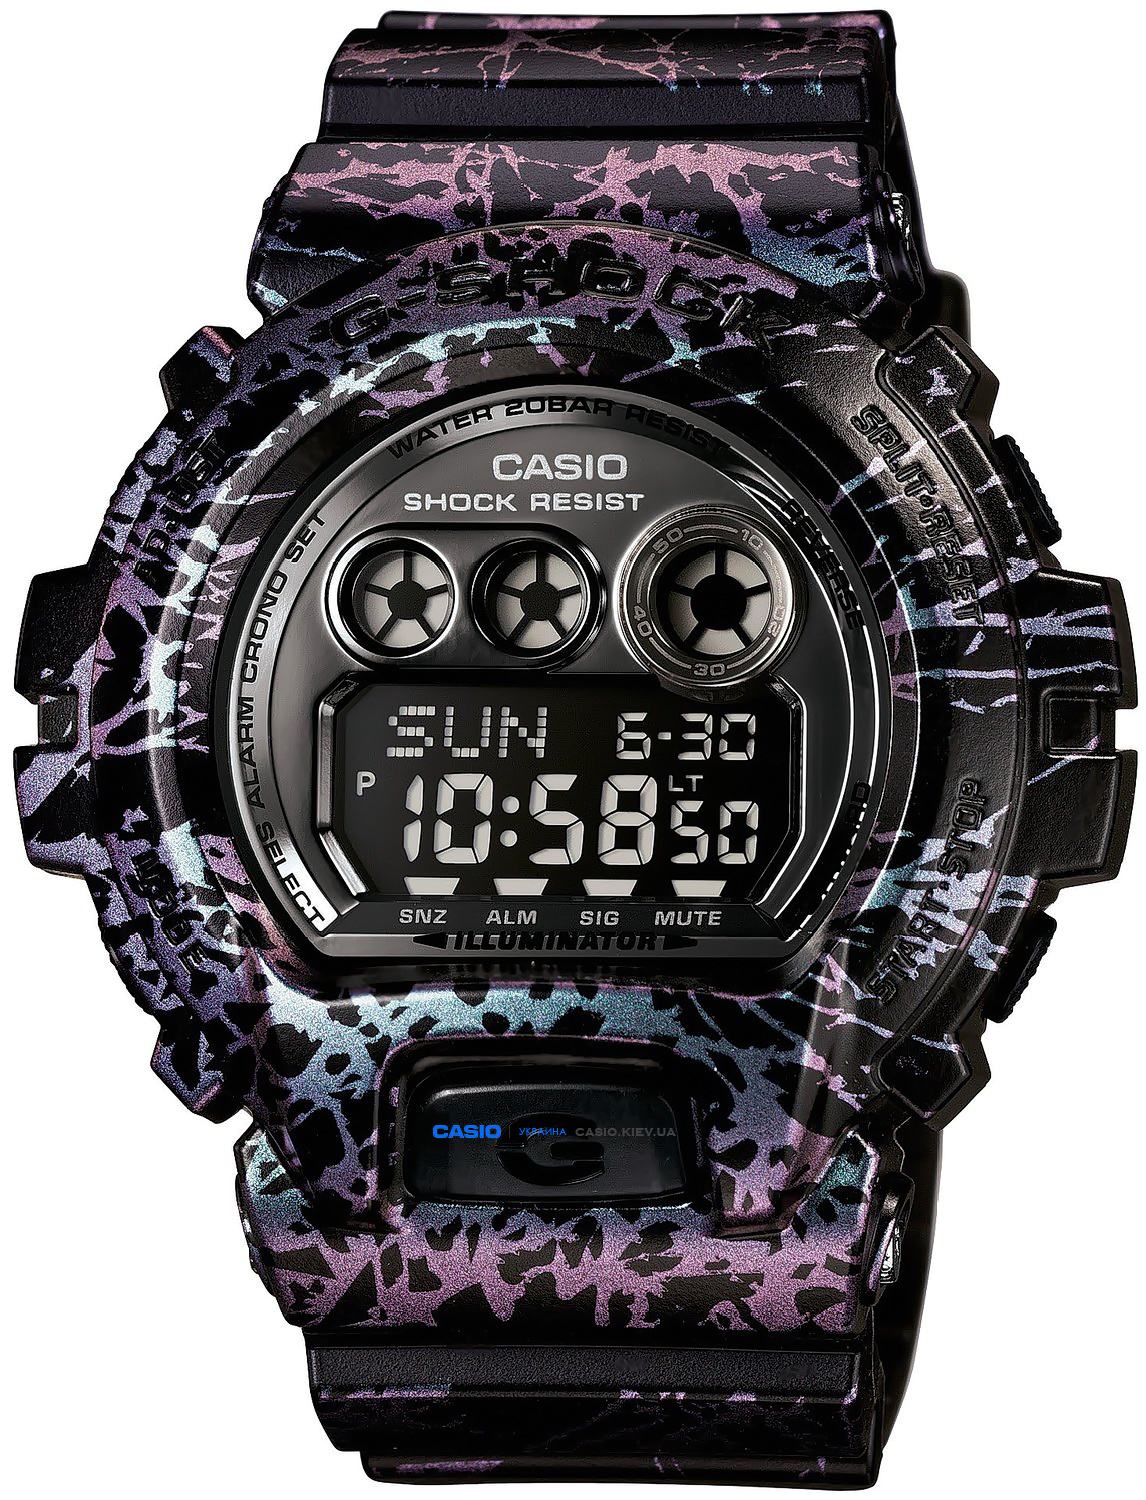 GD-X6900PM-1ER, Casio G-Shock